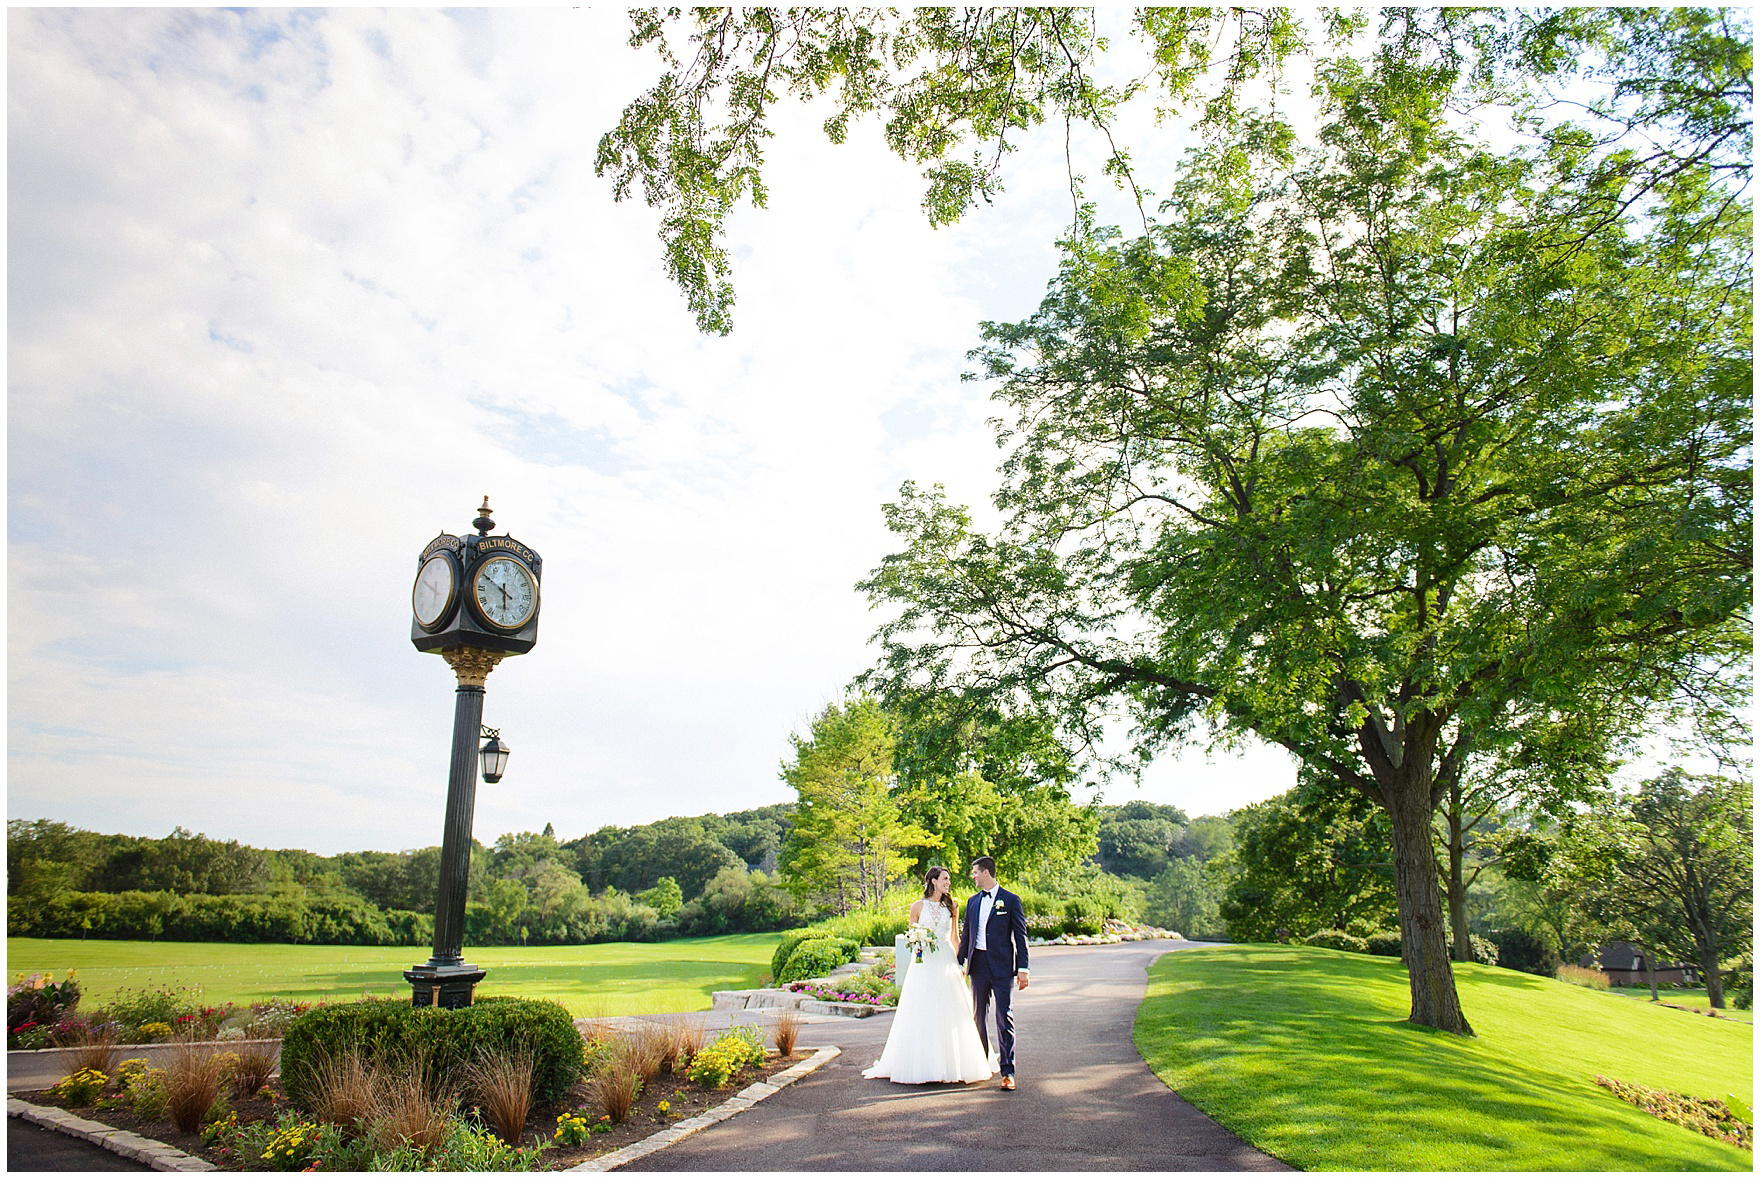 The bride and groom walk on the golf course during a Biltmore Country Club Barrington wedding.